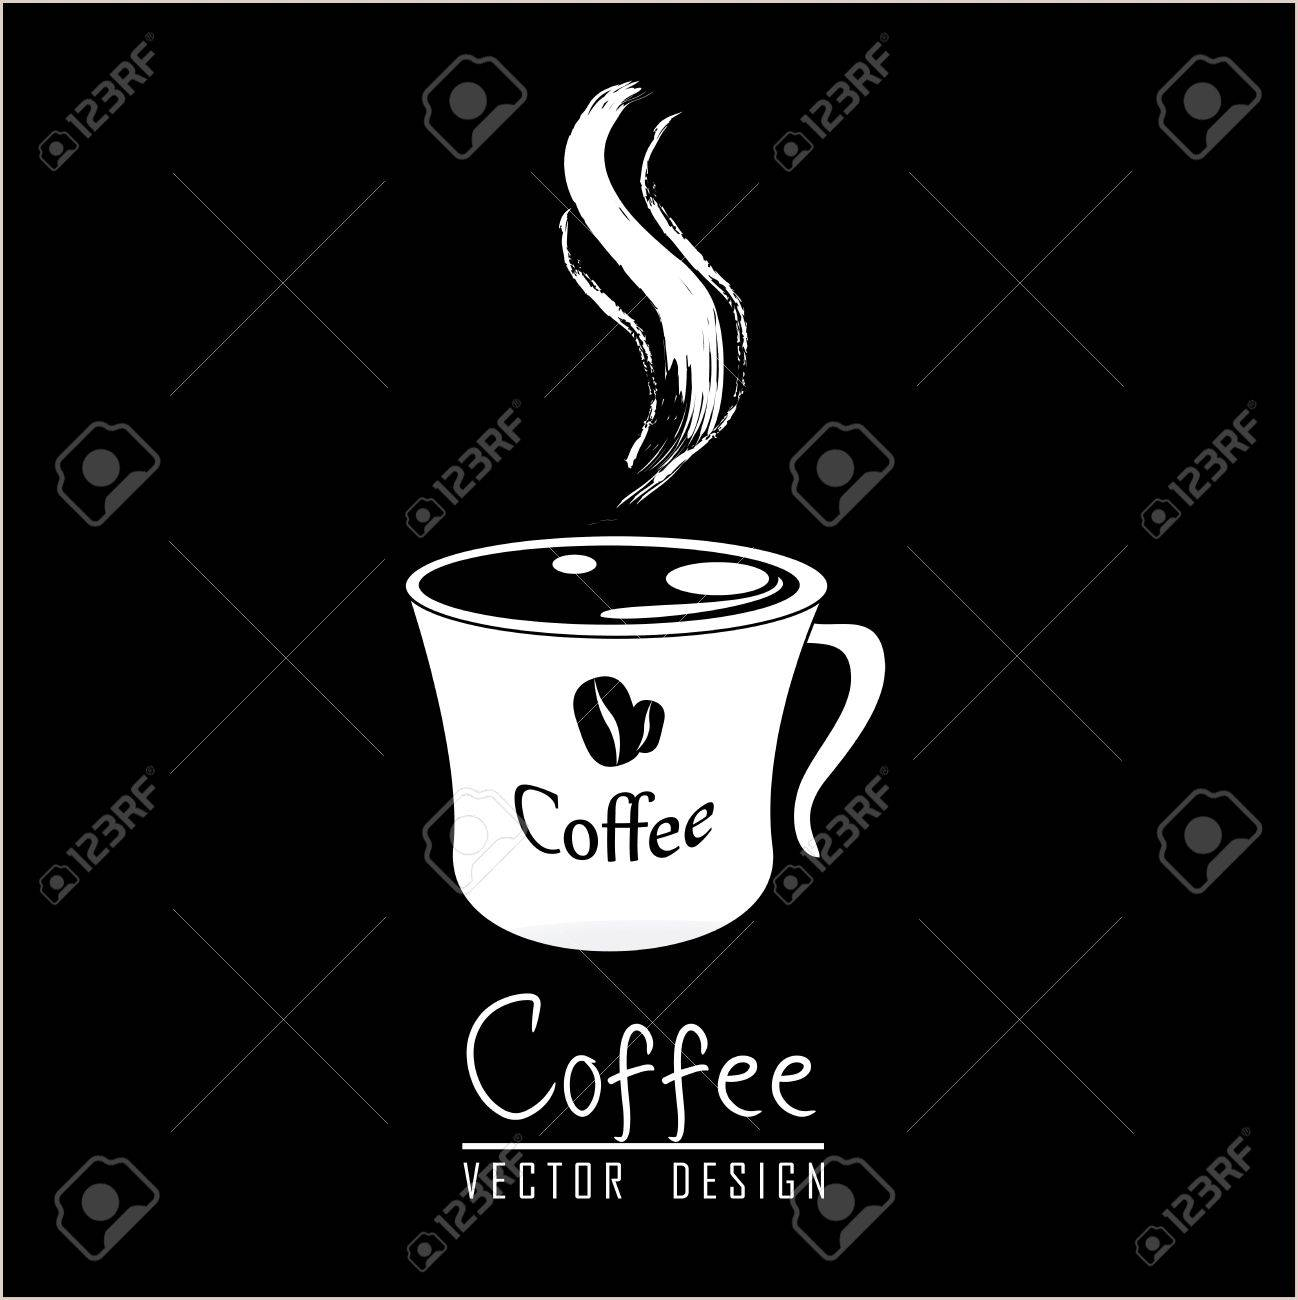 Coffee cup with aroma over black background Stock Vector - 19625759